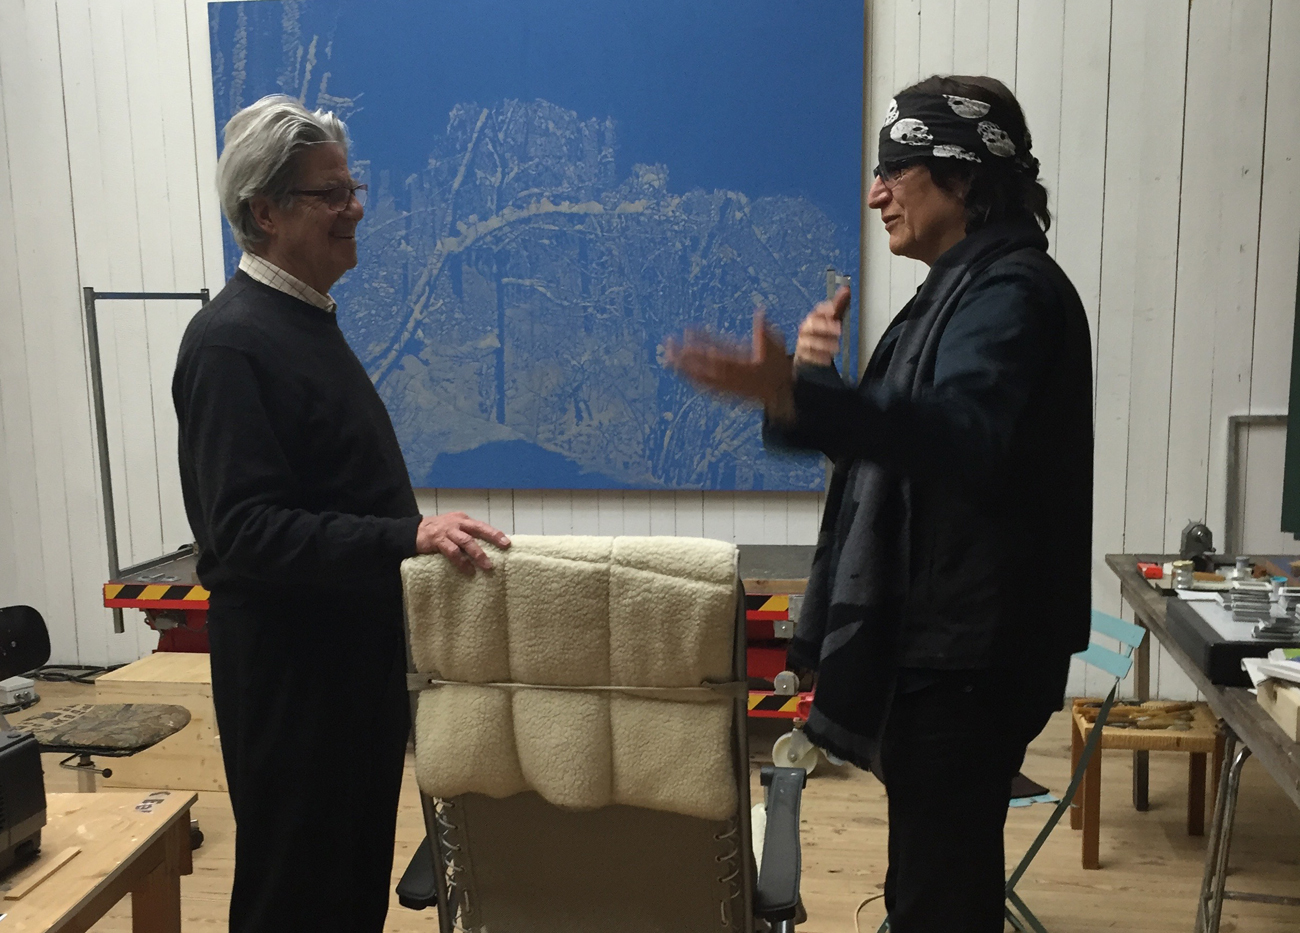 Helnwein talks with Franz Gertsch in his studio